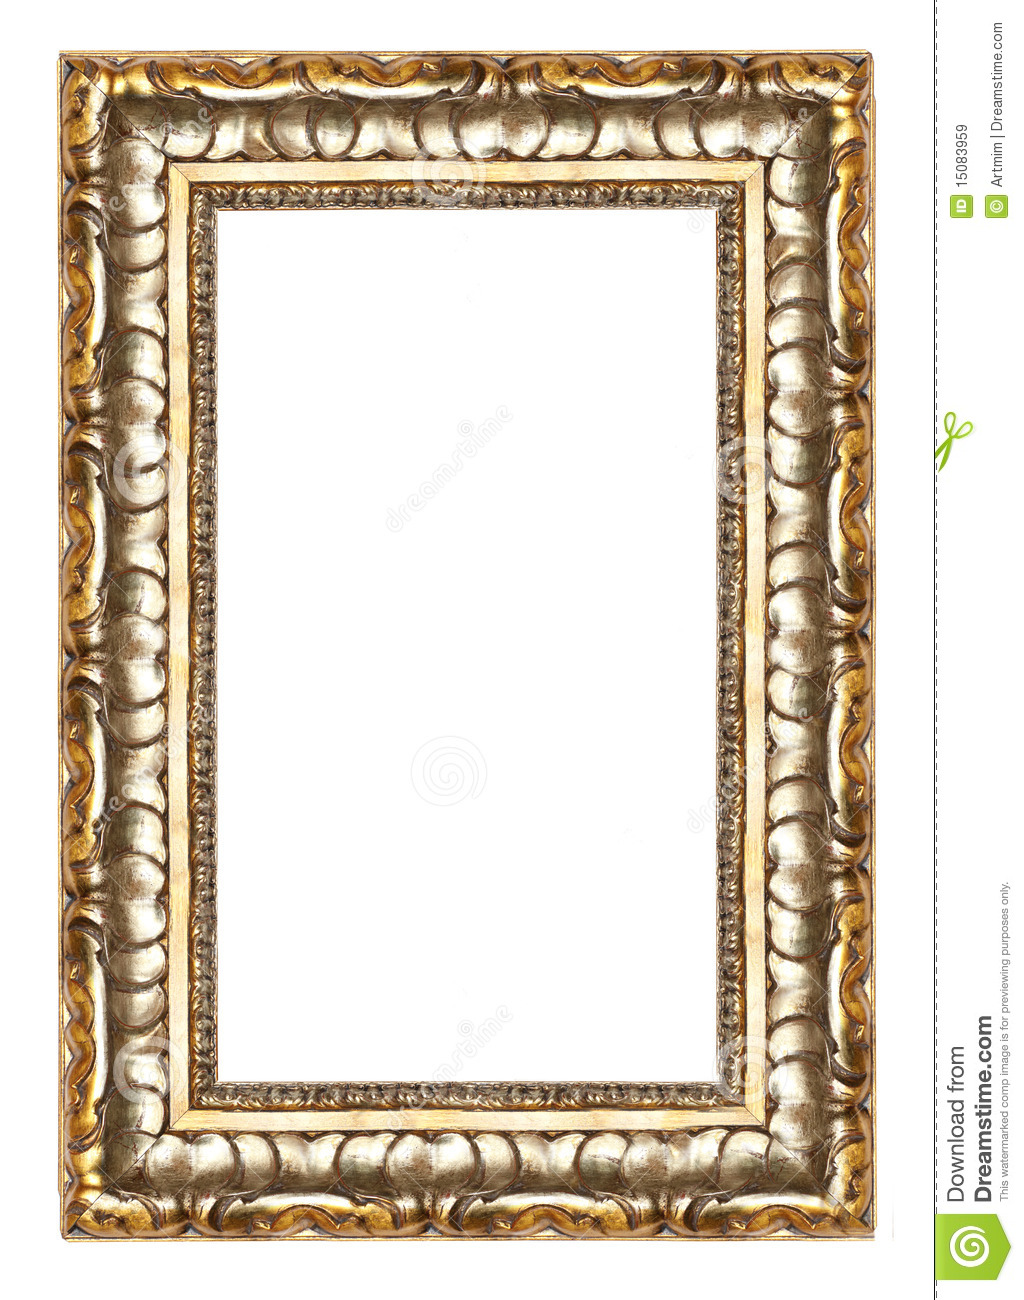 Picture Gold Frame With A Decorative Pattern Stock Image - Image of ...